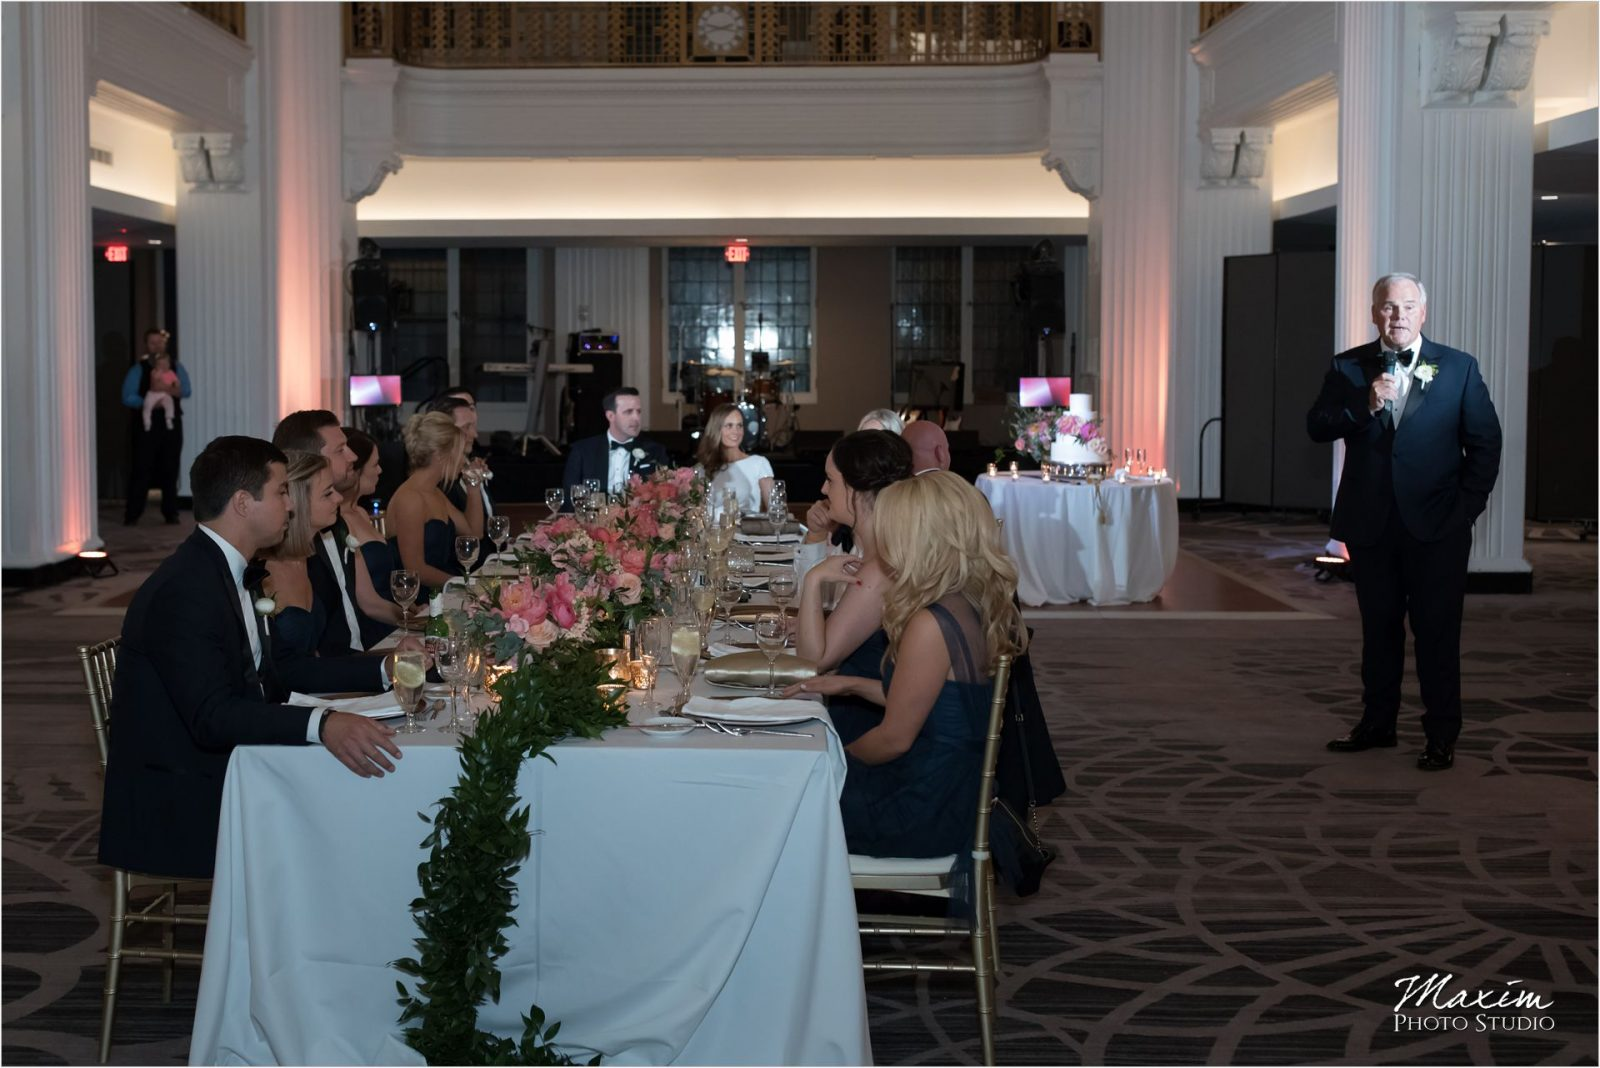 Renaissance Hotel Cincinnati Wedding Reception Bride toasts